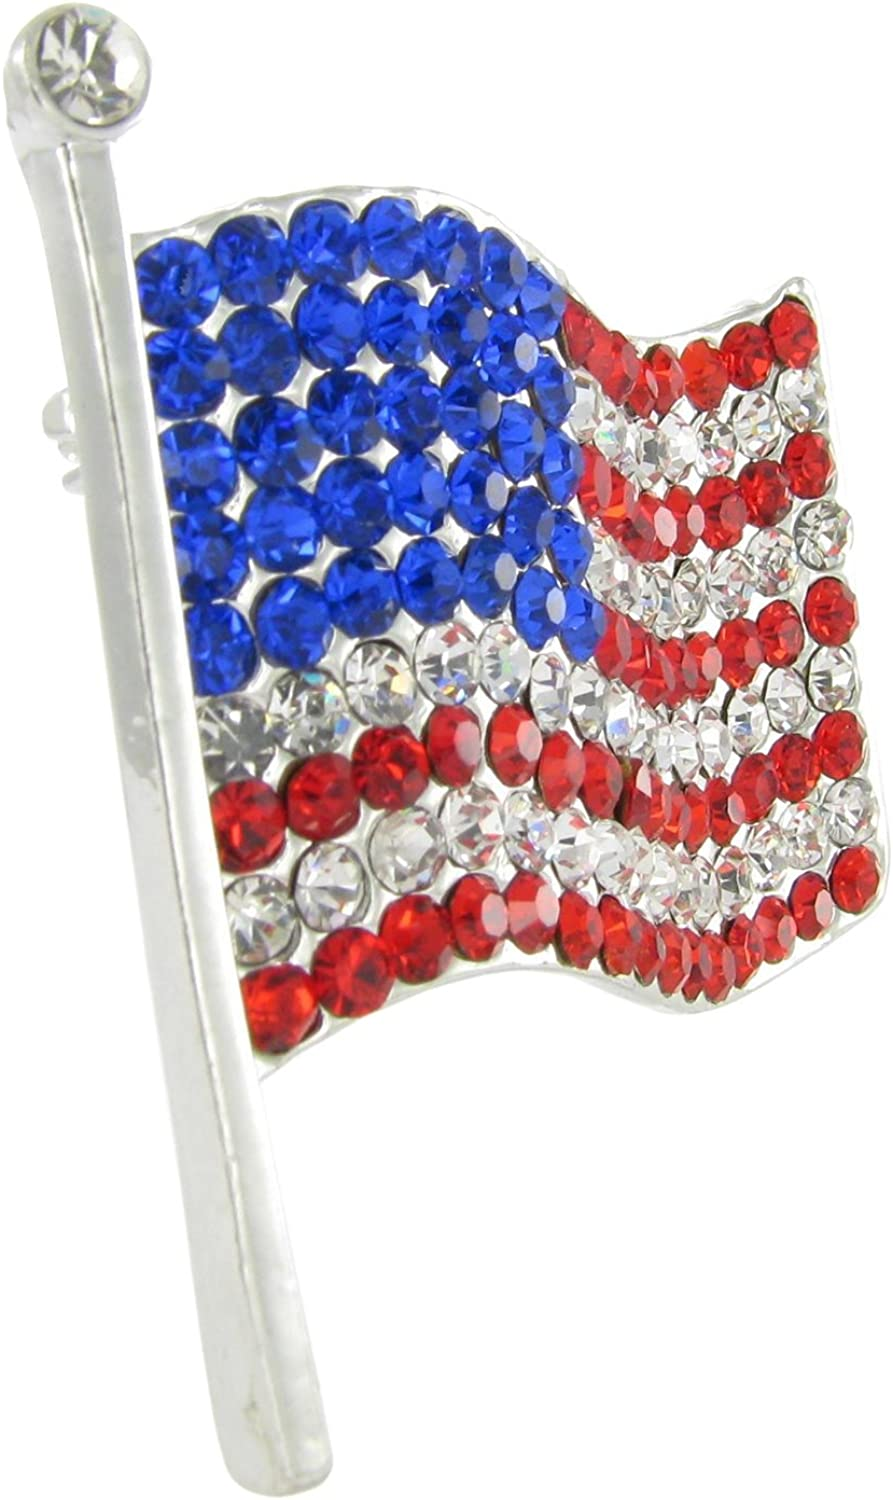 Americas /& Americas USA Flag Lapel Pin .925 Sterling Silver Large